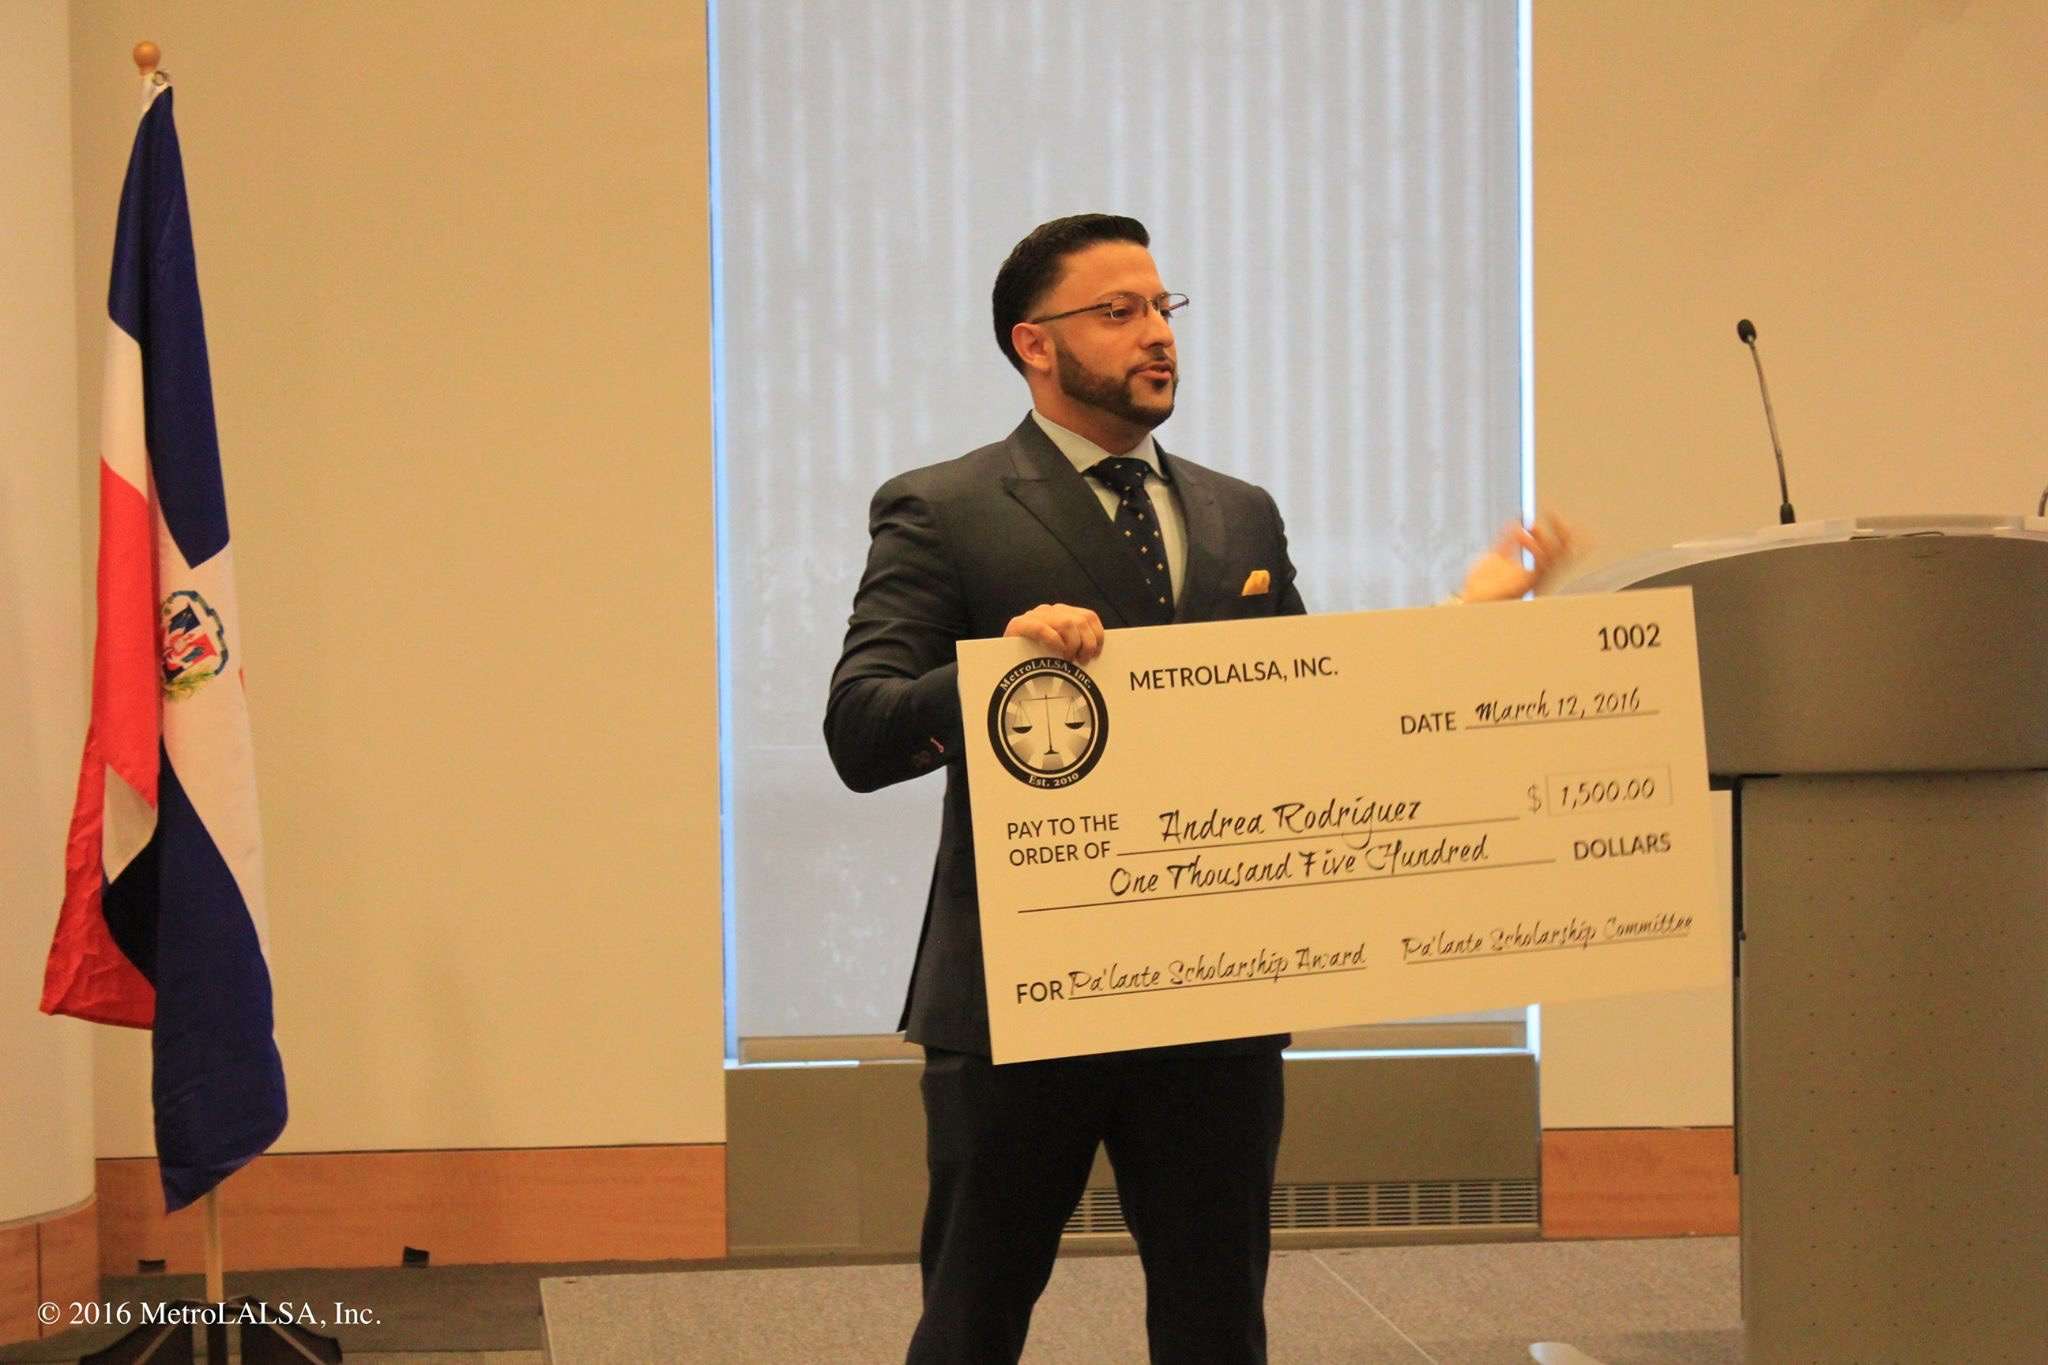 MetroLALSA Alumnus Christopher Carrion presenting the 2016 Pa'lante Scholarship Award at the Pa'lante VI Conference at Fordham University School of Law.